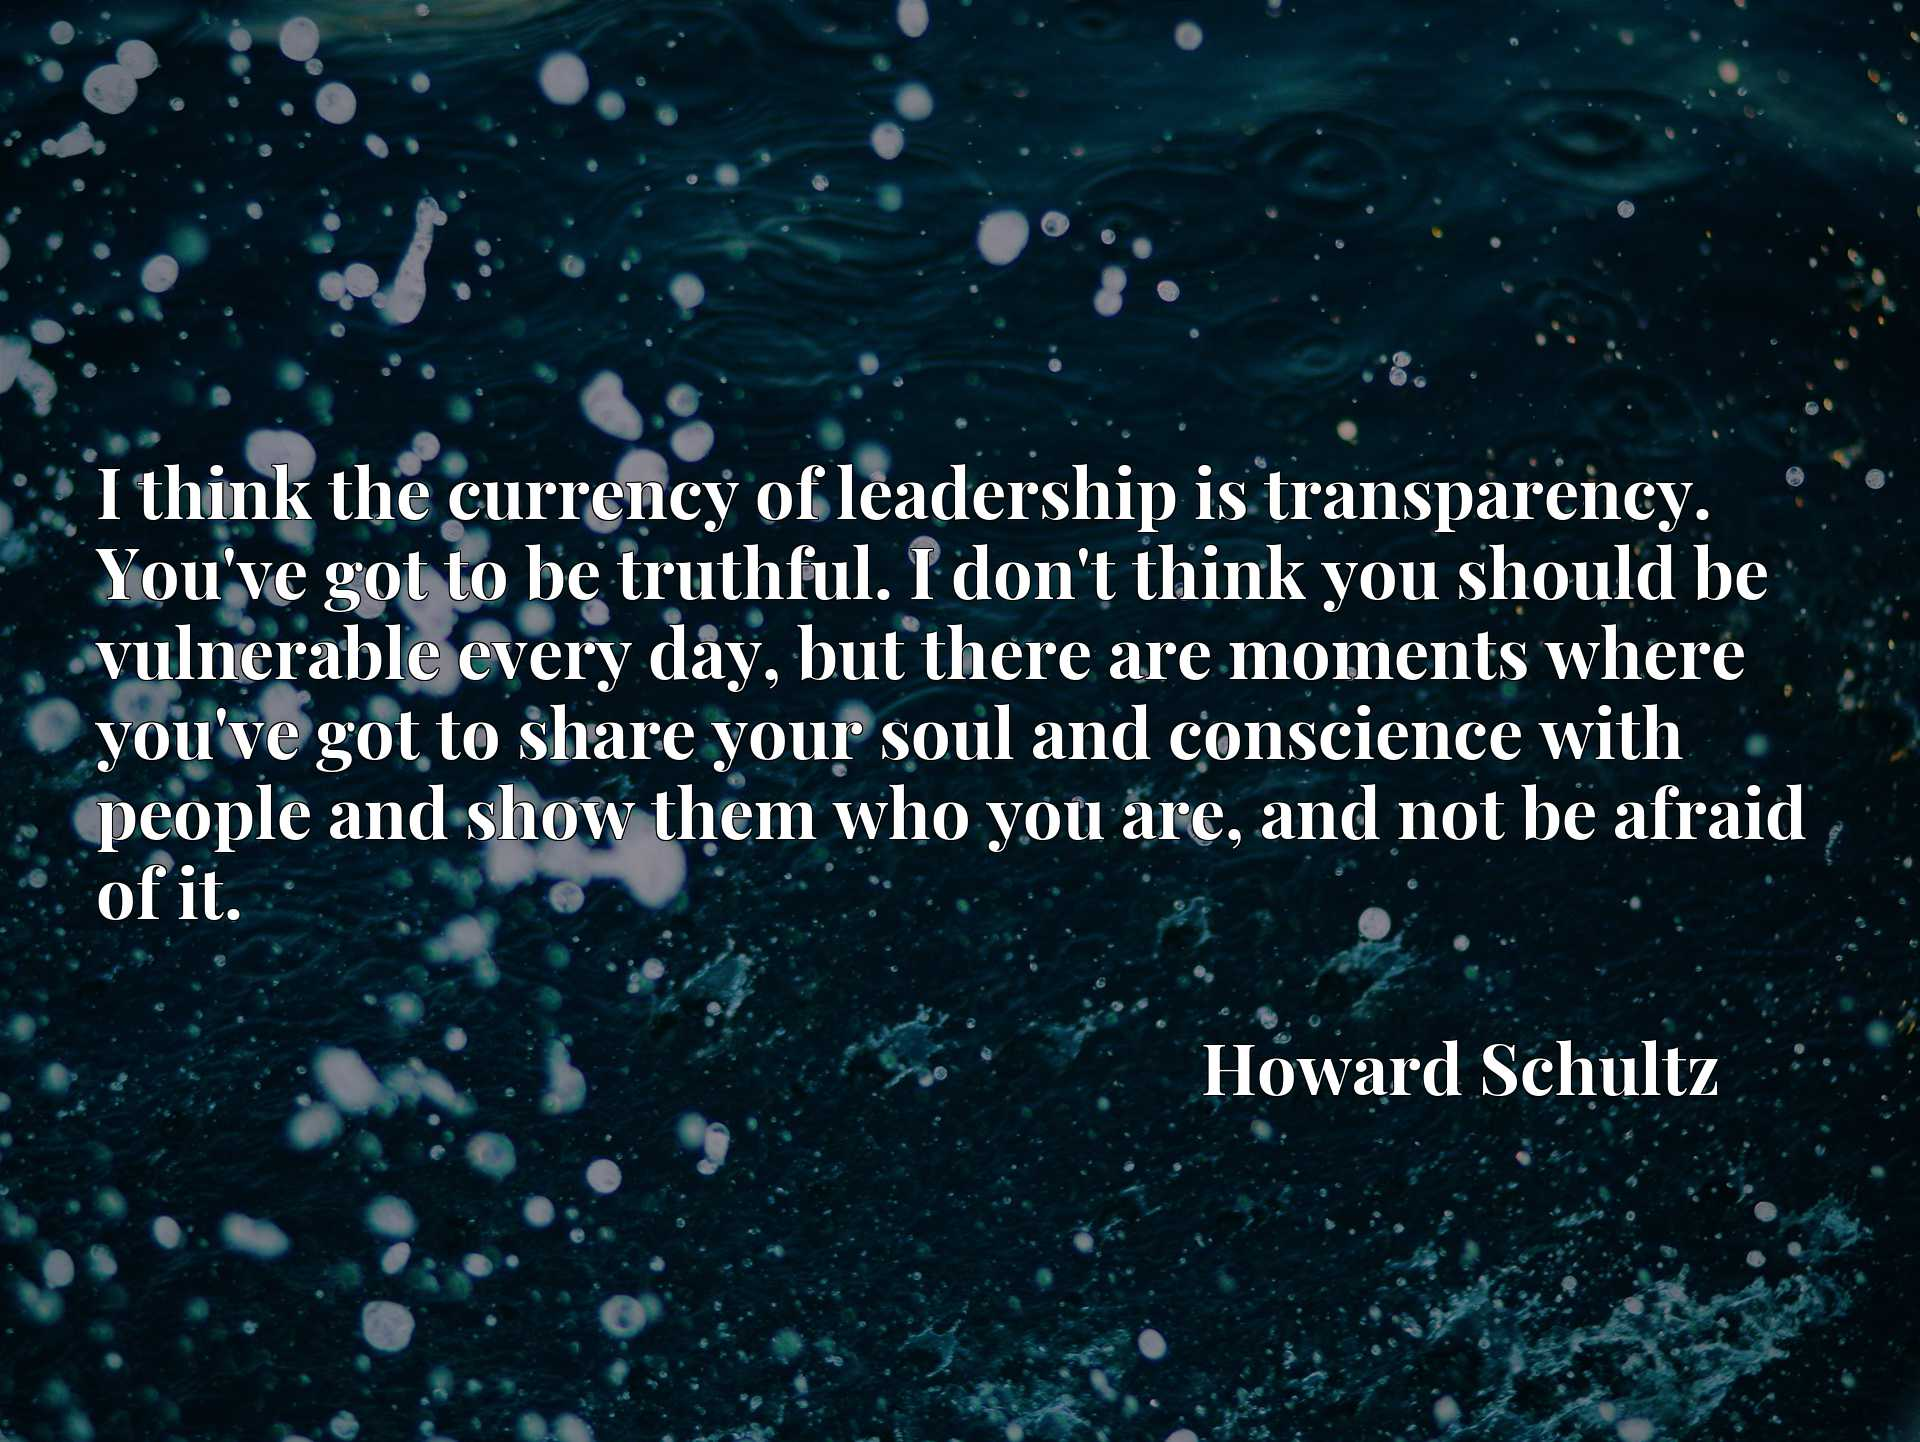 Quote Picture :I think the currency of leadership is transparency. You've got to be truthful. I don't think you should be vulnerable every day, but there are moments where you've got to share your soul and conscience with people and show them who you are, and not be afraid of it.